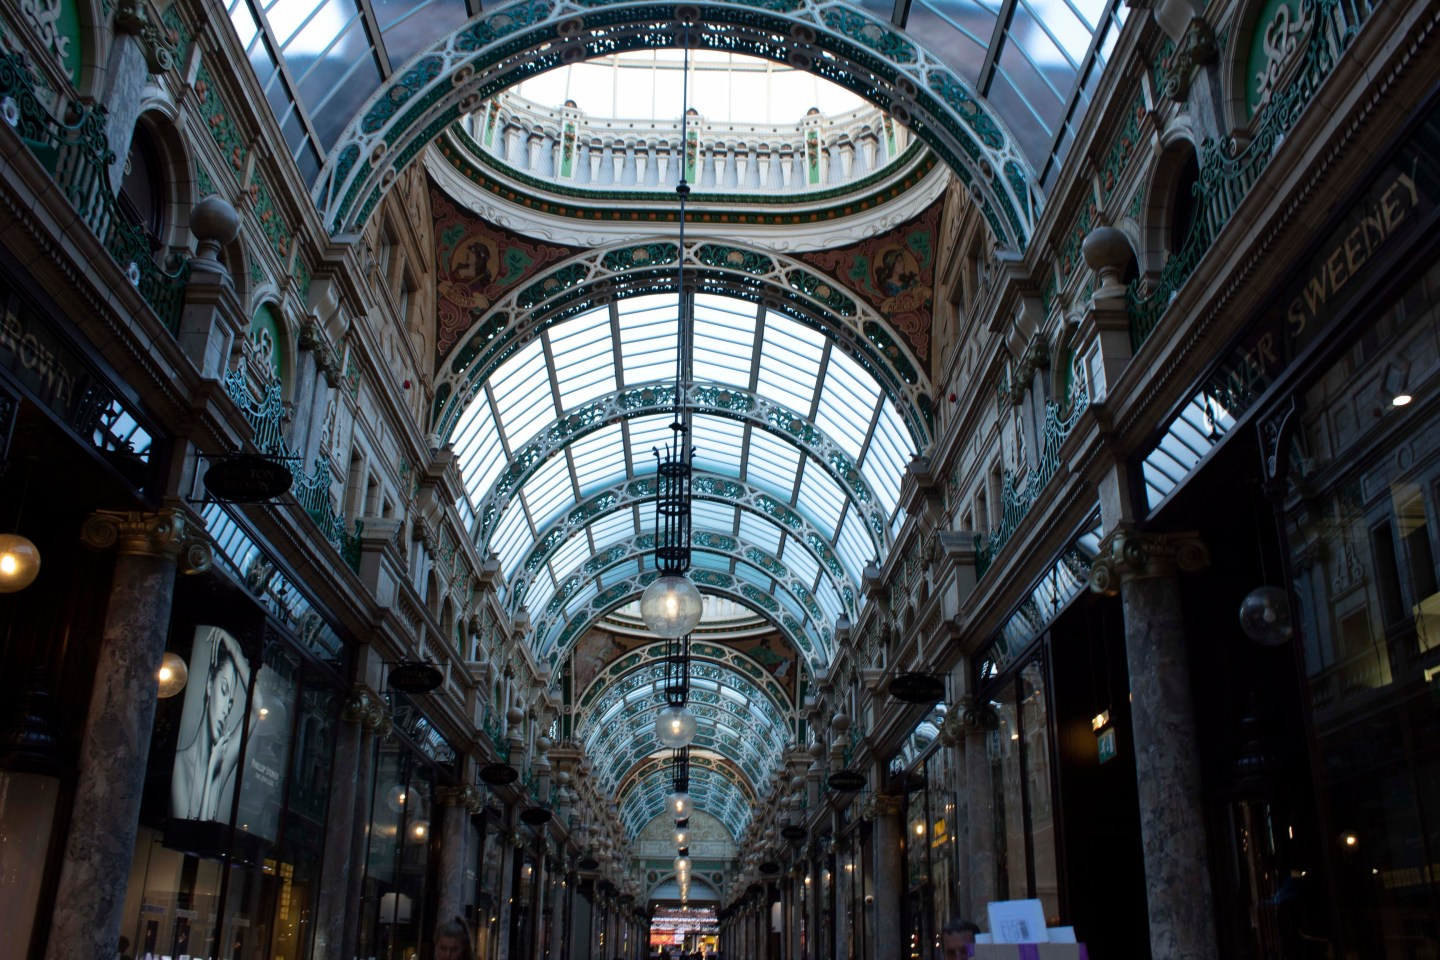 Arches and marble pillars inside a Leeds shopping arcade